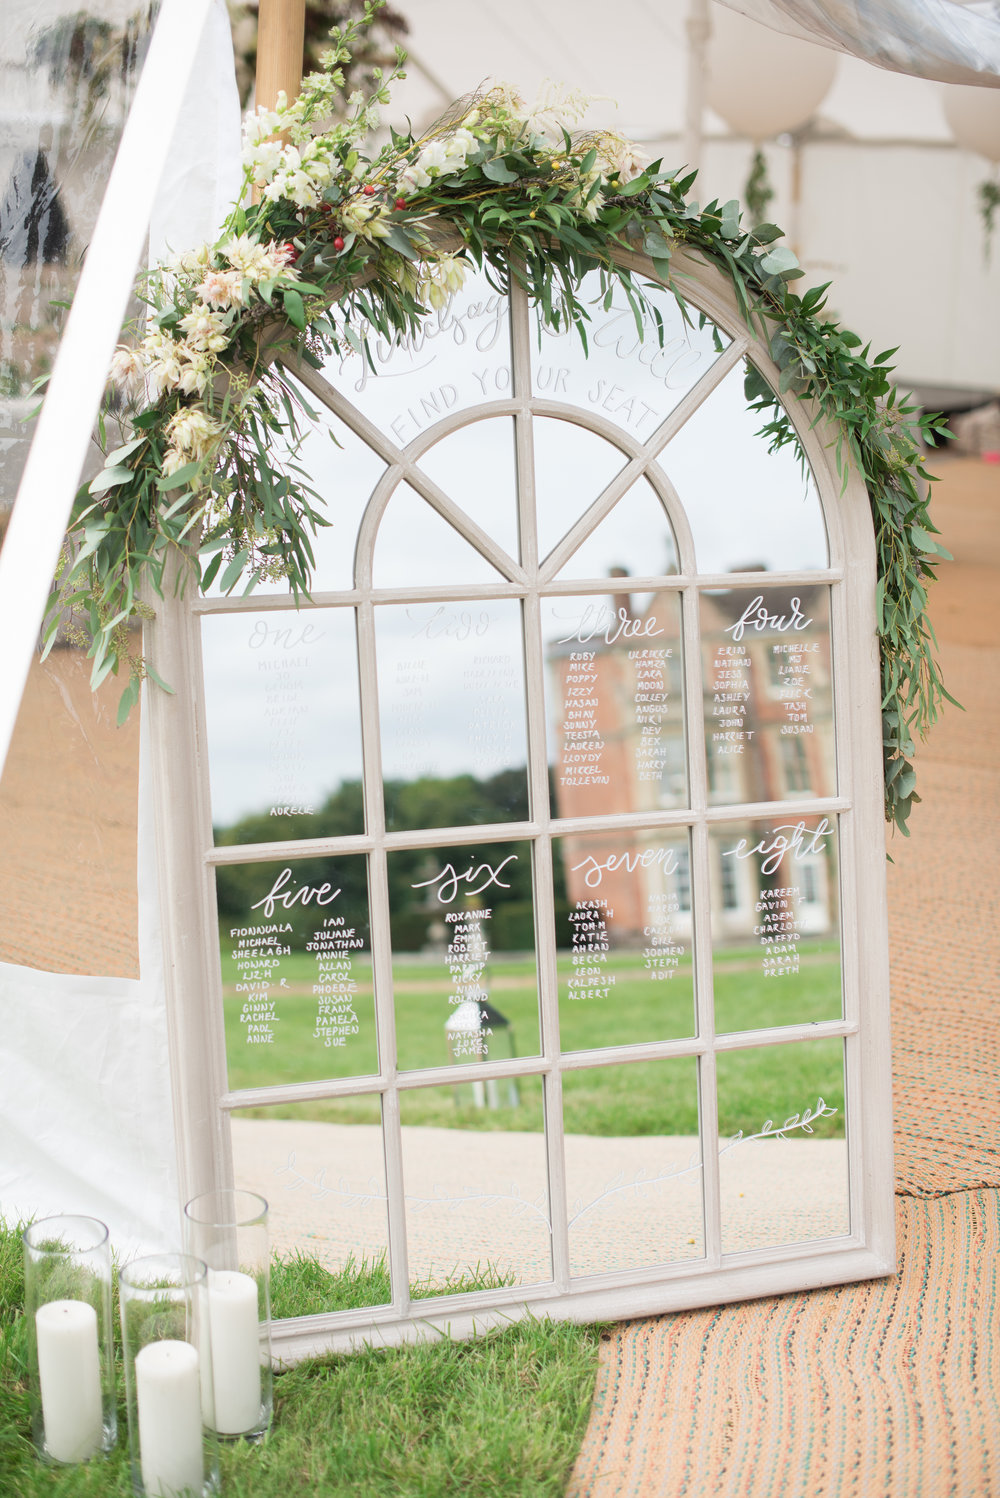 Large window style mirror to hire weddings oxfordshire berkshire